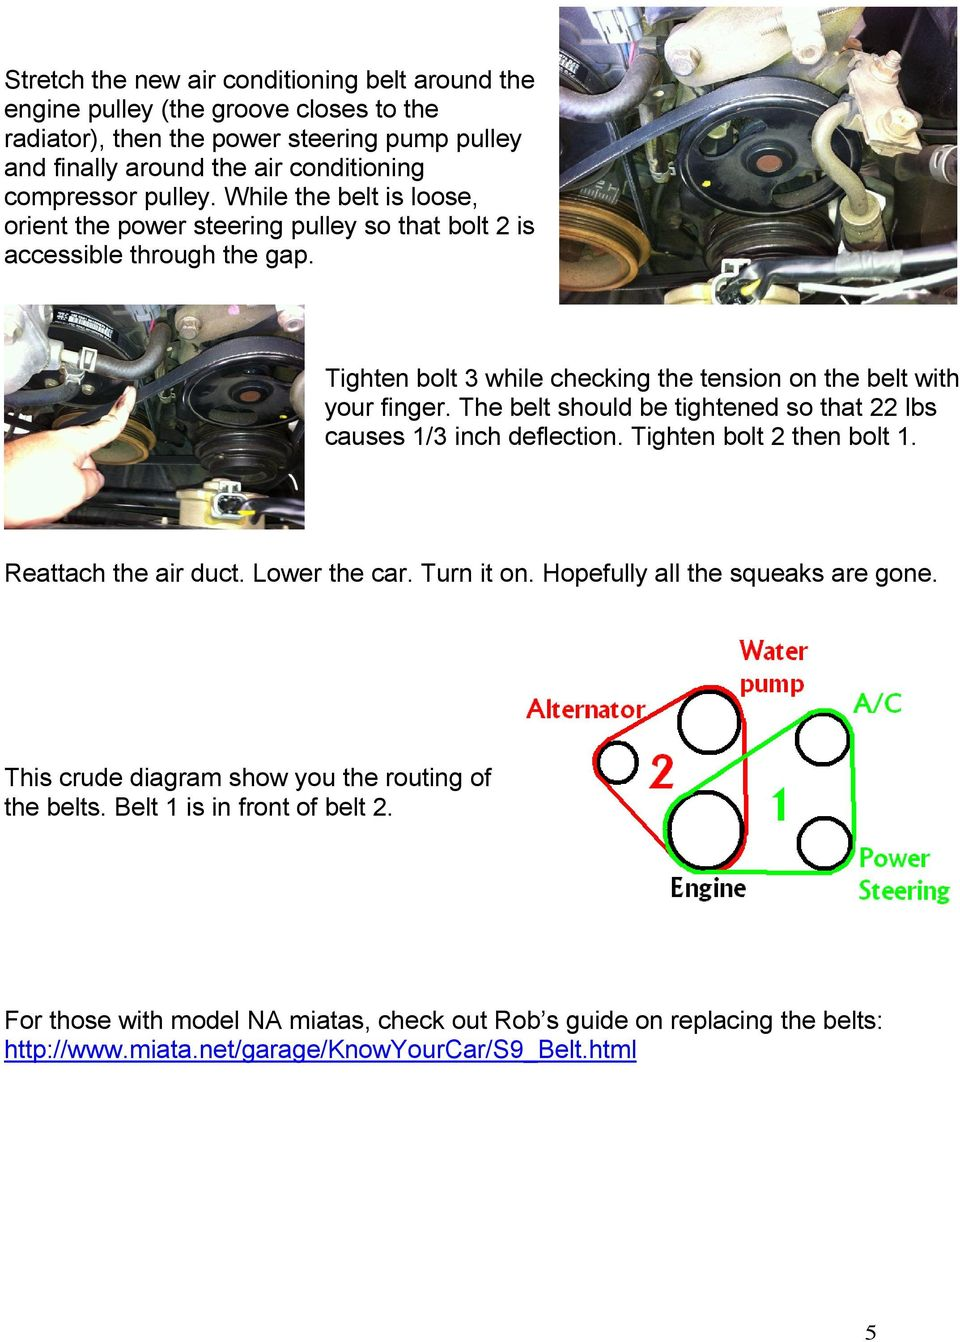 How To Remove Replace And Tighten Accessory Belts For A Second Engine Pulley Diagram The Belt Should Be Tightened So That 22 Lbs Causes 1 3 Inch Deflection